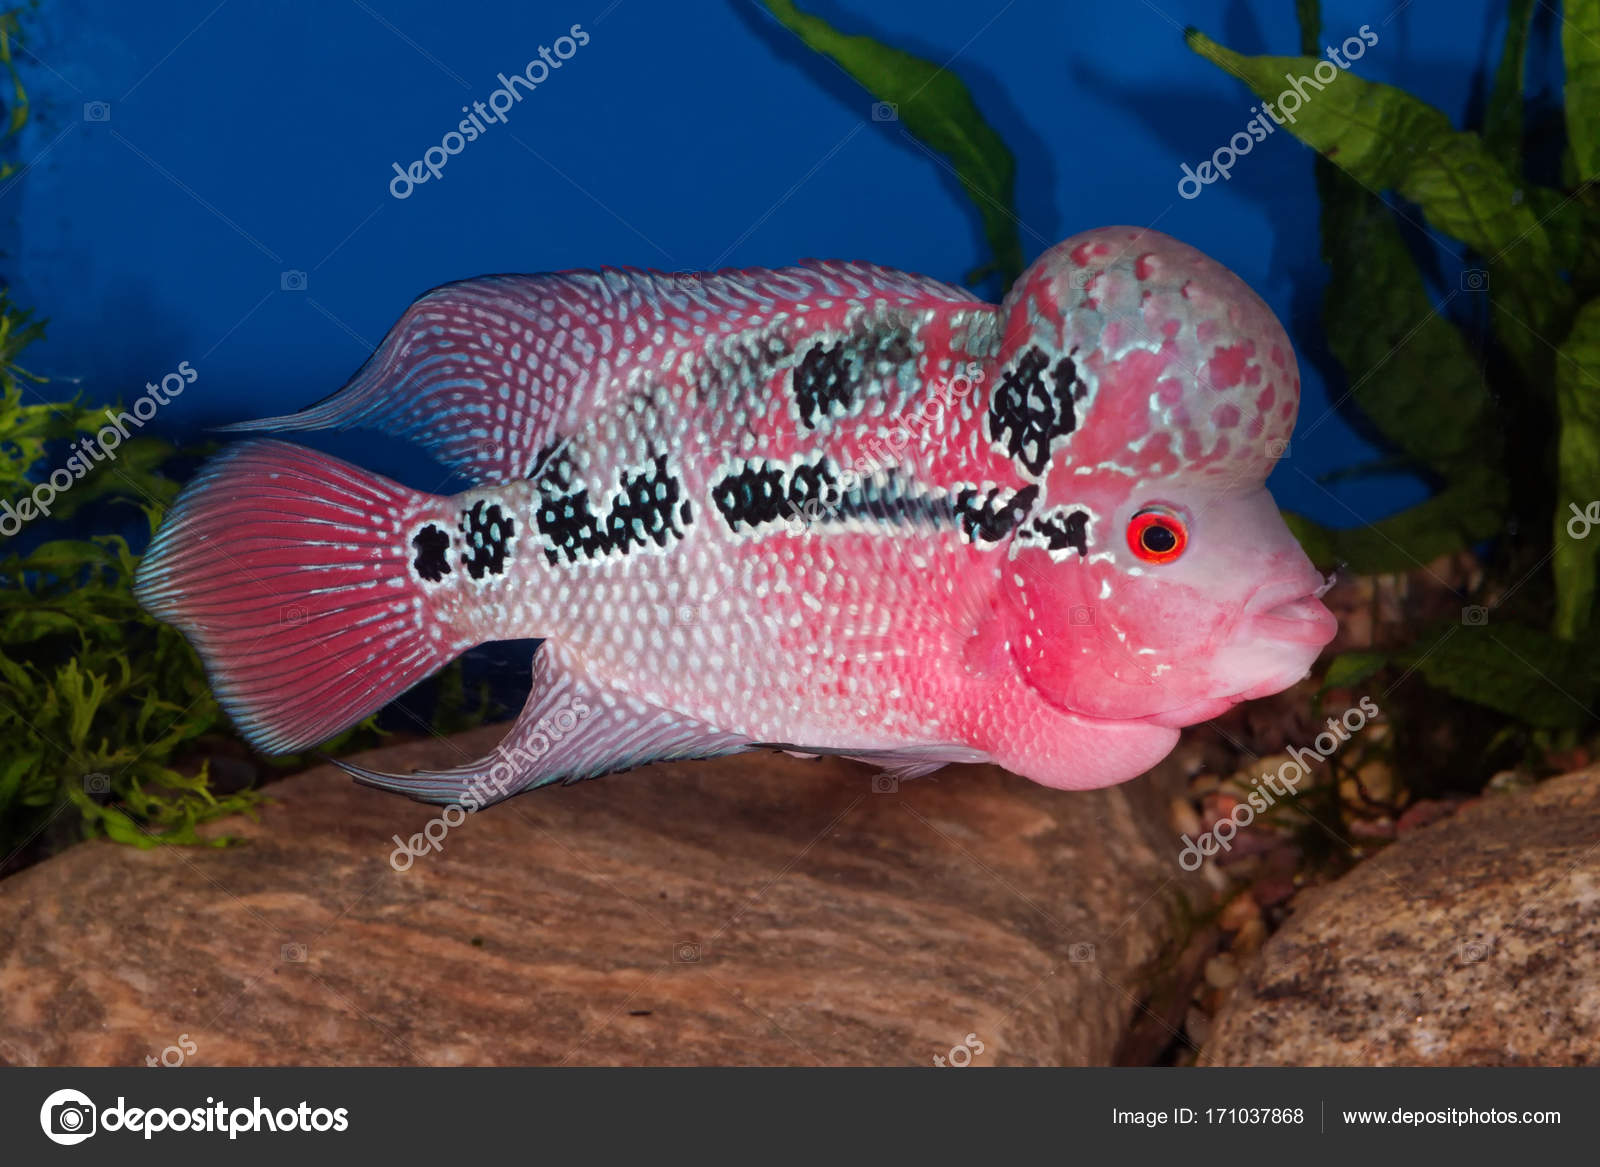 Flowerhorn fish in aquarium stock photo neryx 171037868 for Flower horn fish price